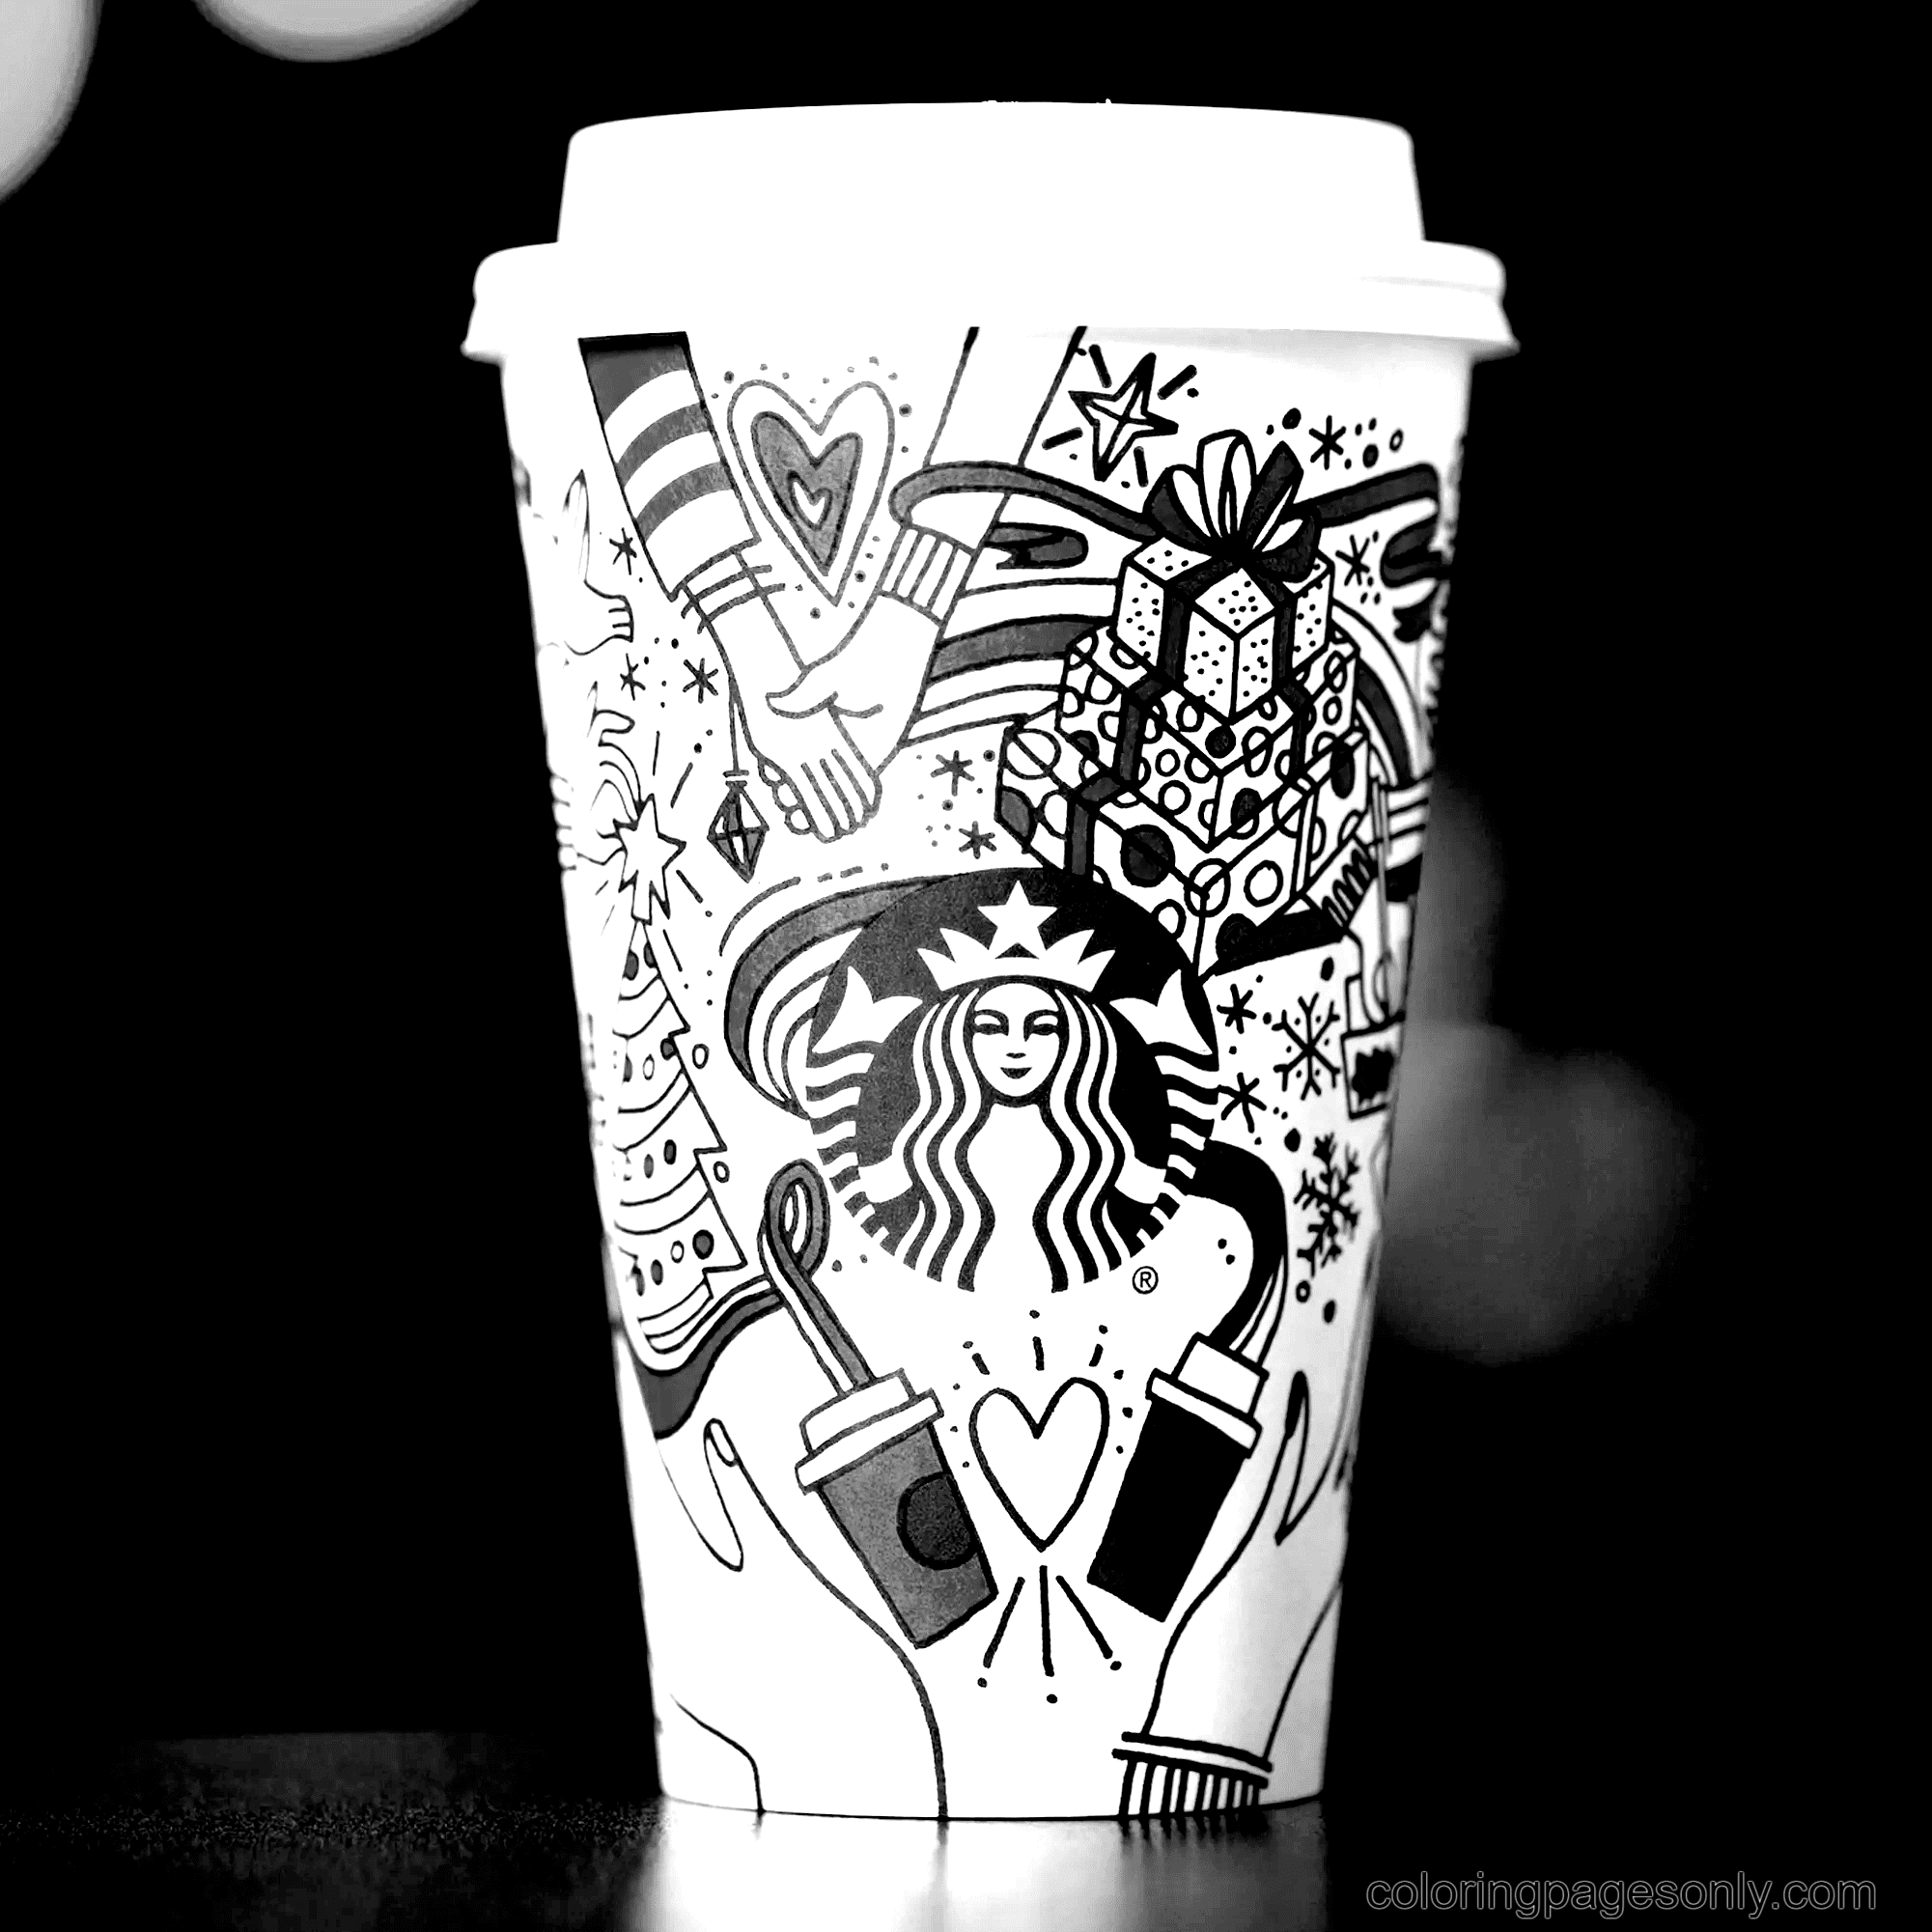 Viral Starbucks Coffee Cup Coloring Page